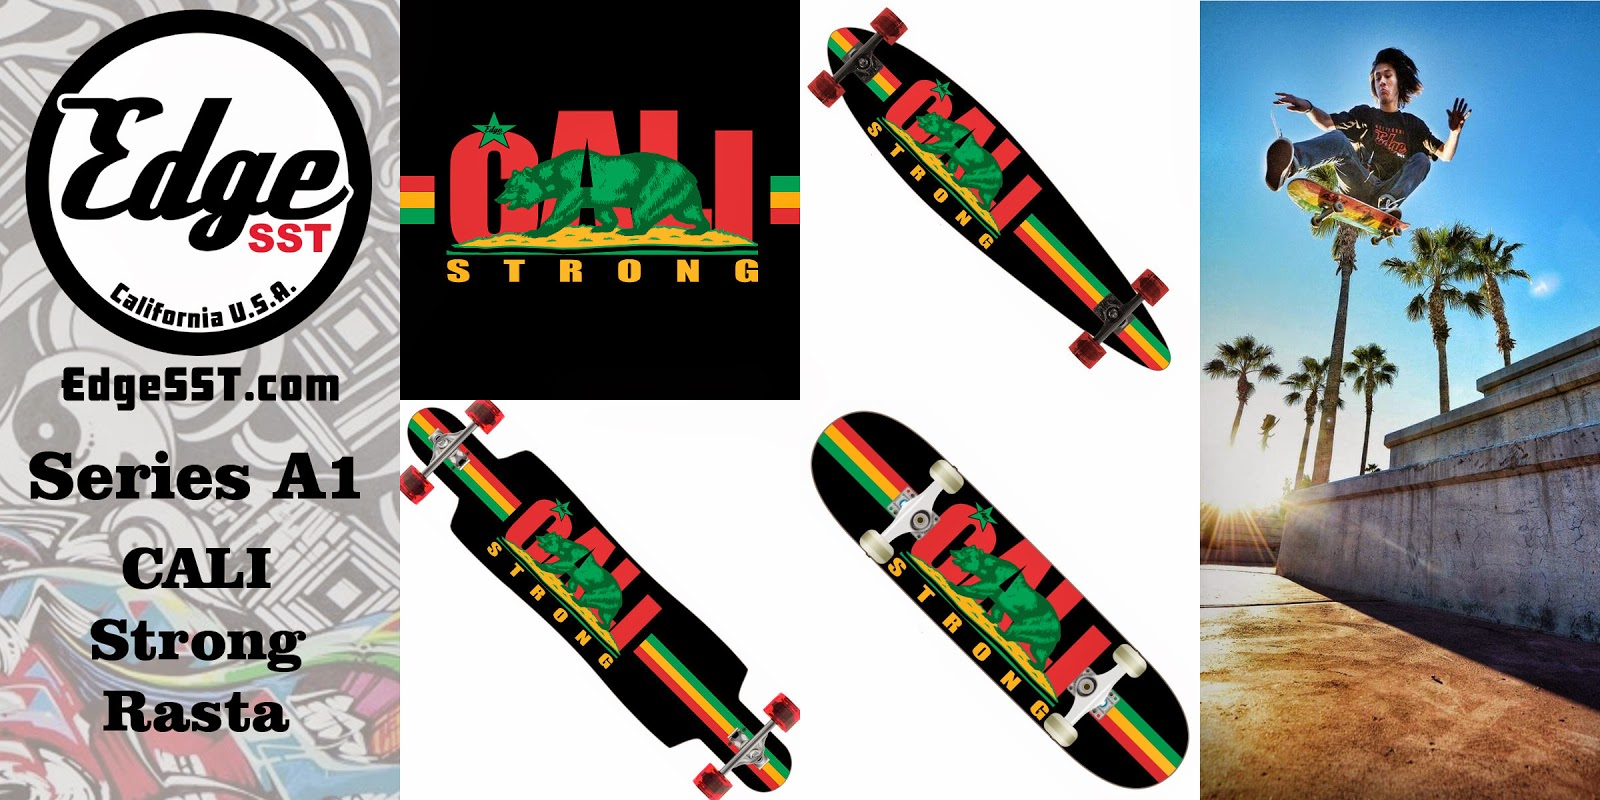 Edge SST Skateboard Series A1: CALI Strong Rasta Skateboard